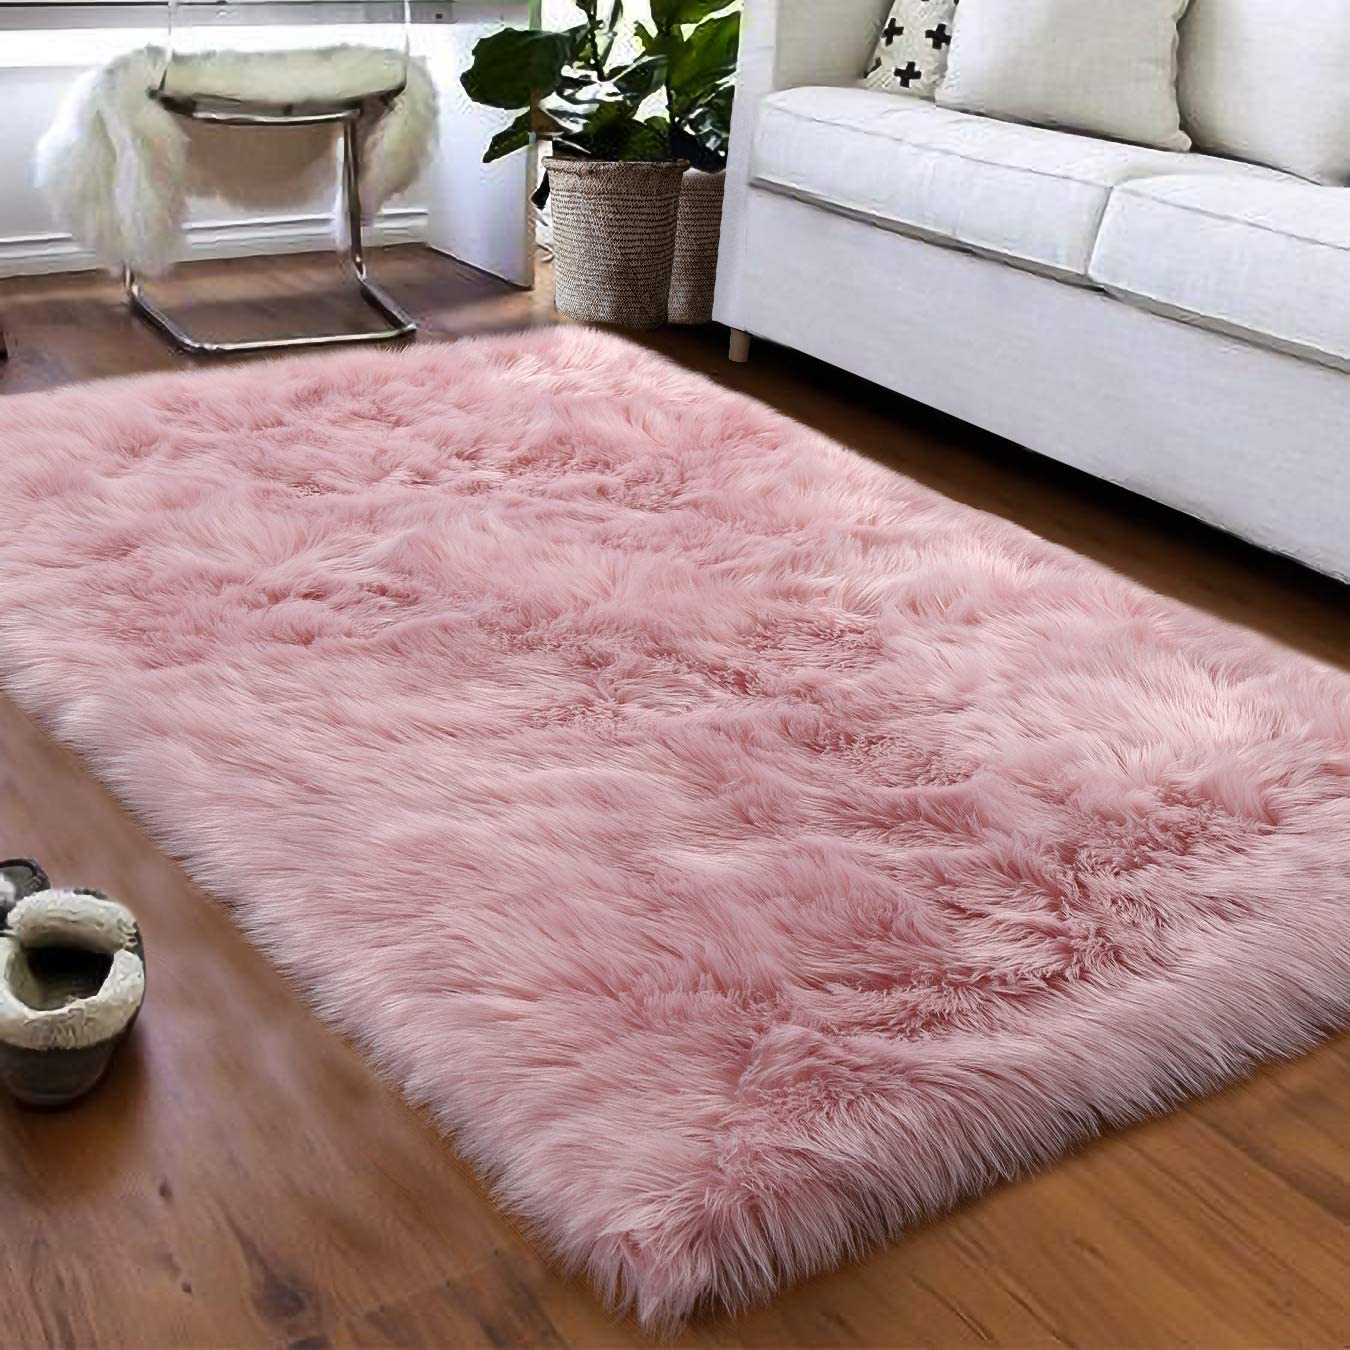 Softlife Fluffy Faux Fur Sheepskin Rugs Luxurious Wool Area Rug For Kids Room Bedroom Bedside Living Room Office Home Decor Carpet 3ft X 5ft Pink Home Kitchen